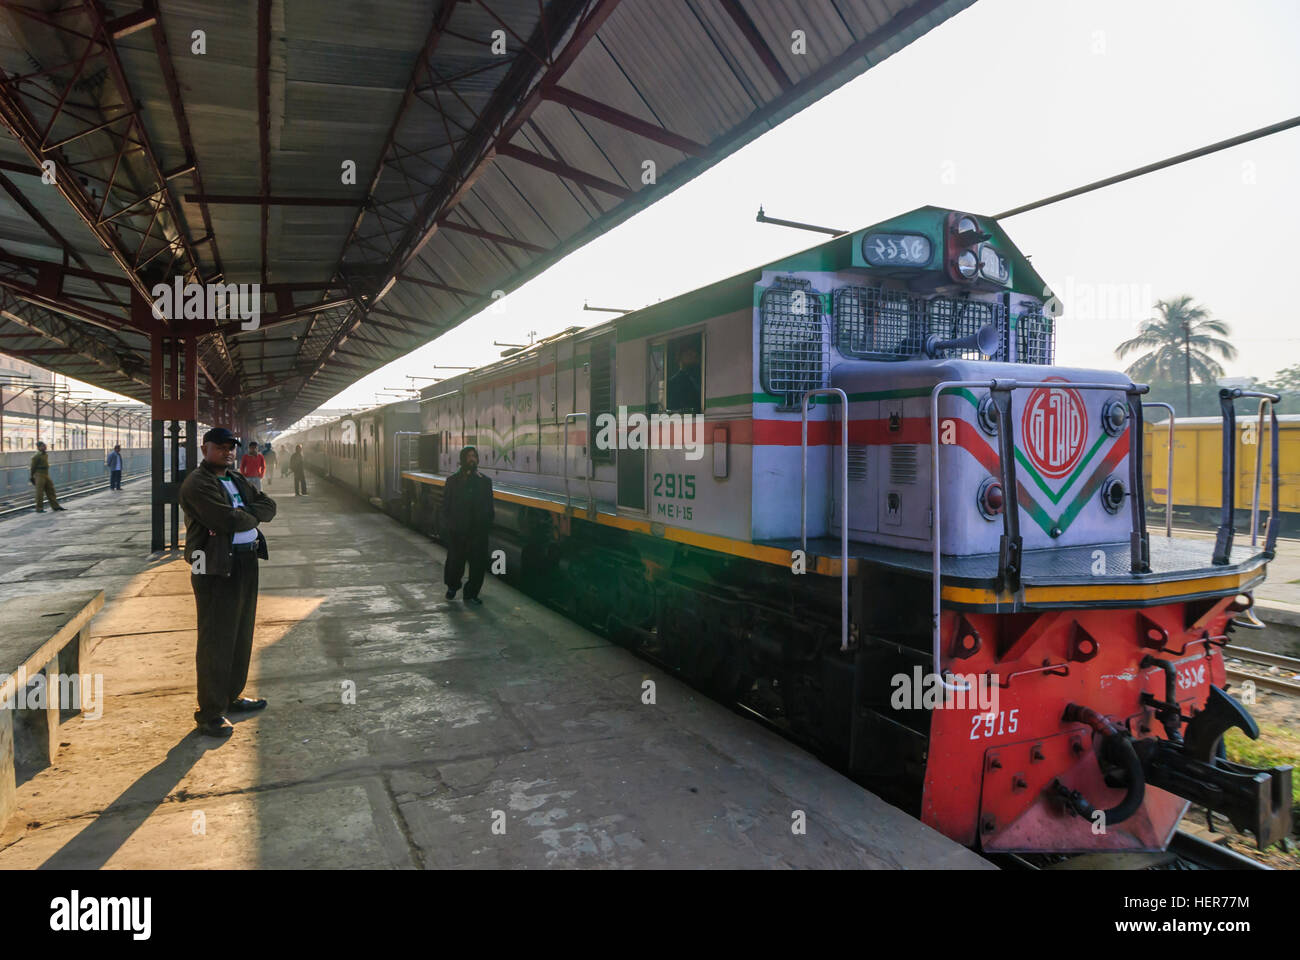 Chittagong: Intercity train in the station, Chittagong Division, Bangladesh - Stock Image